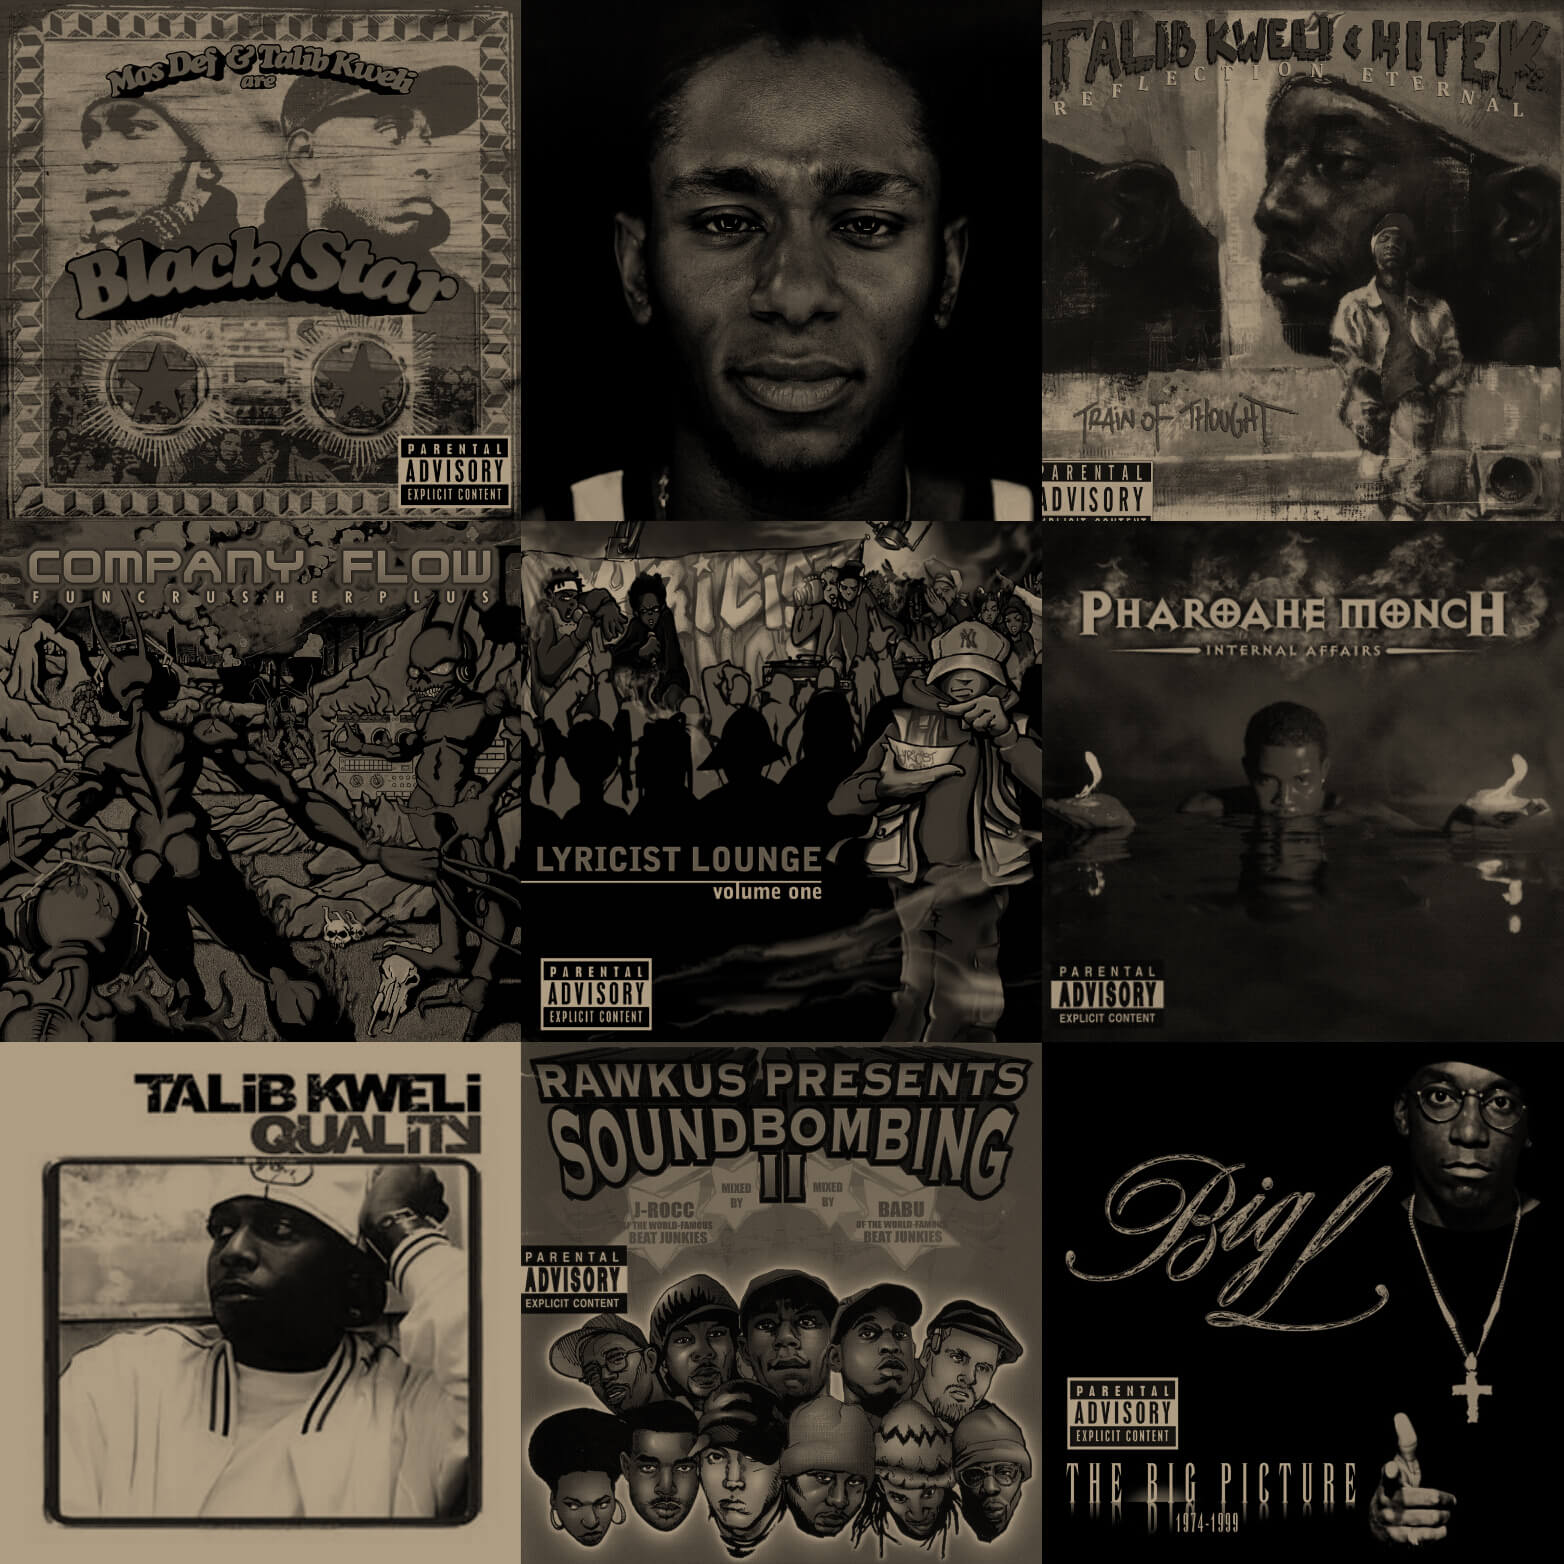 Bring The Rawkus: The Best Albums From Rawkus Records - Hip Hop Golden Age